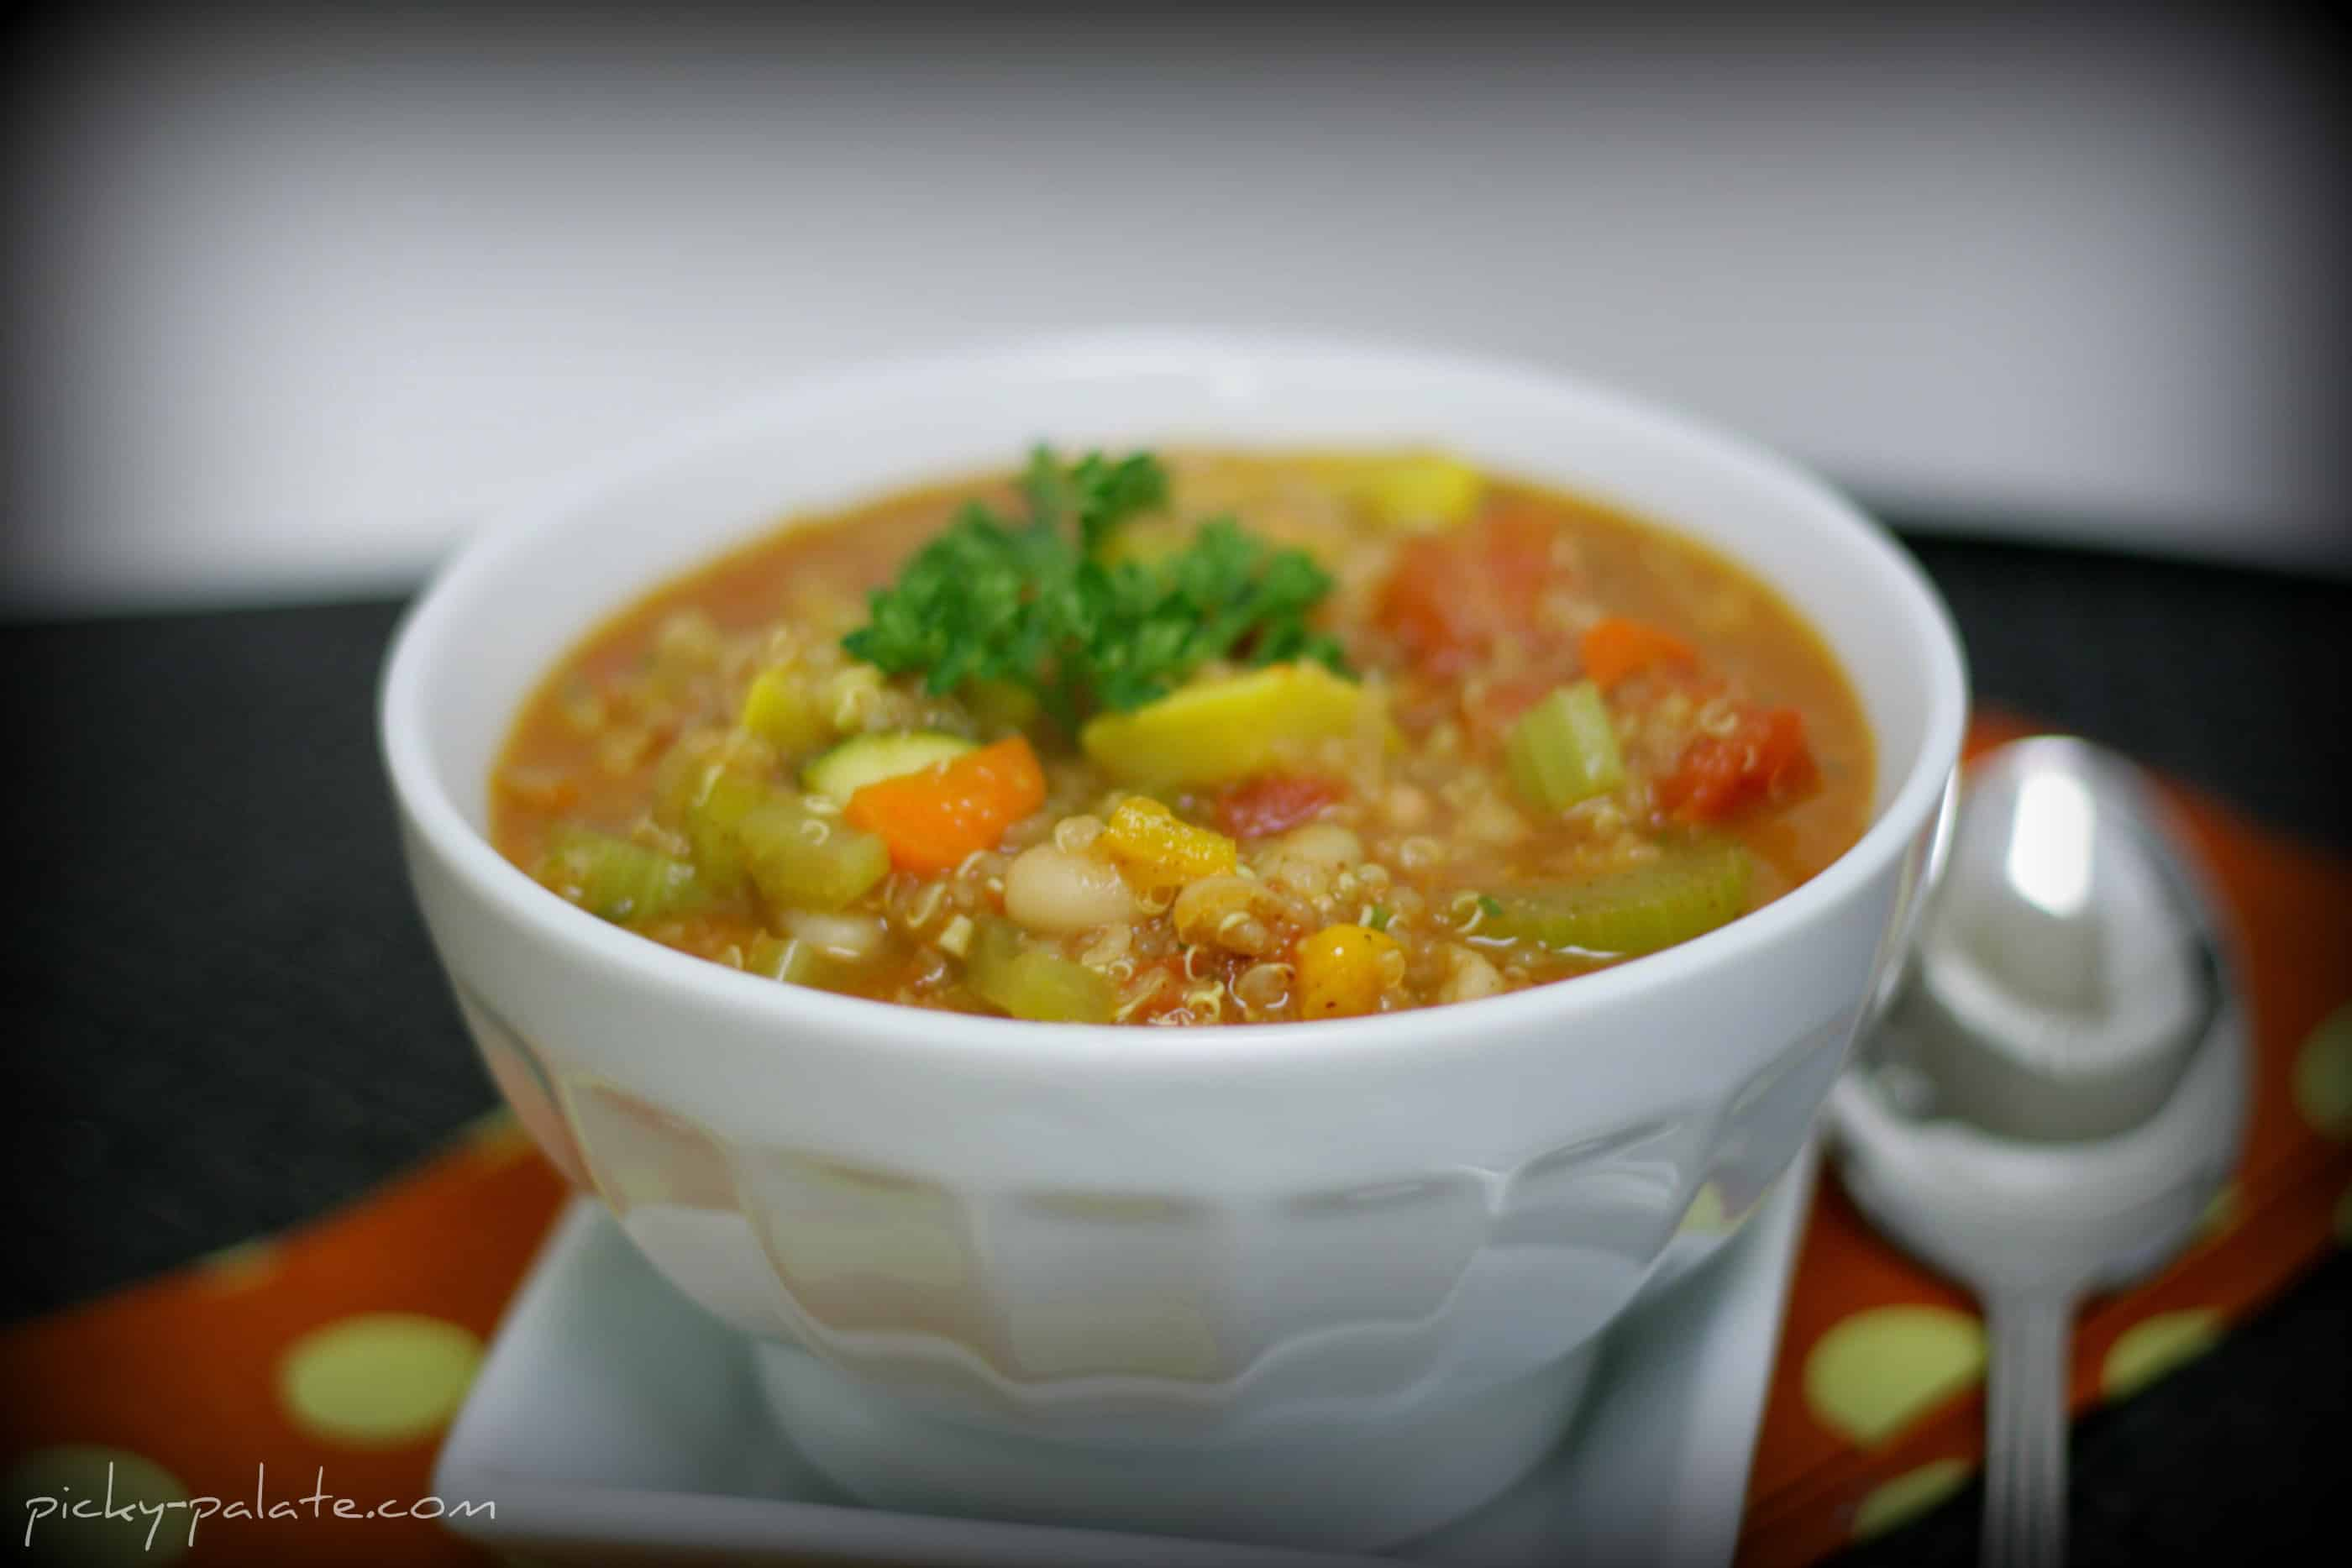 A bowl of Chunky Vegetable Quinoa Chili with a spoon.